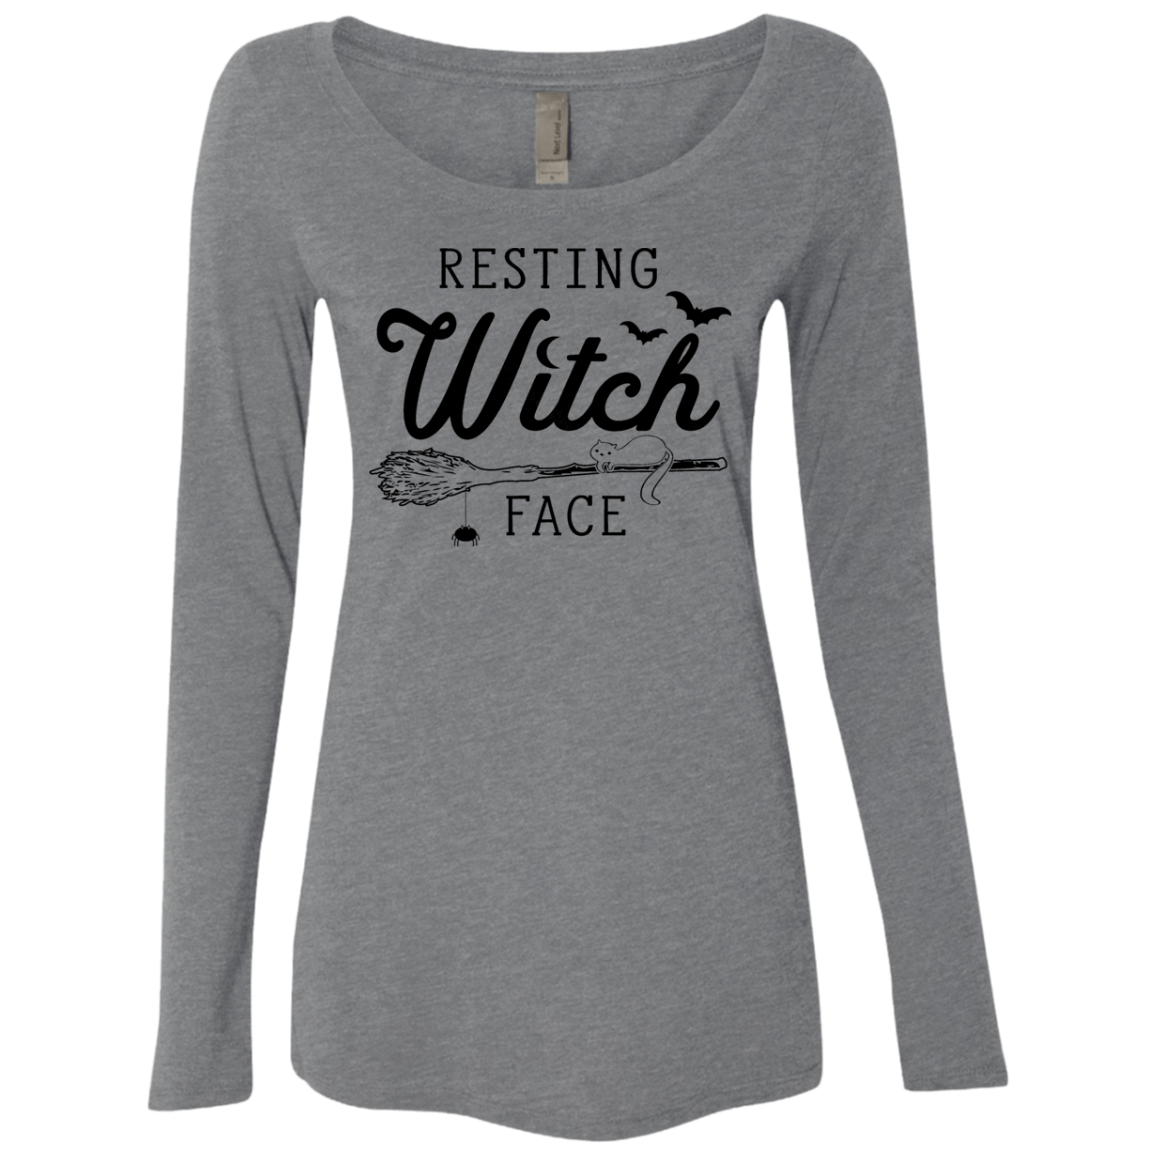 Resting Witch Face Women's Long Sleeve Tee